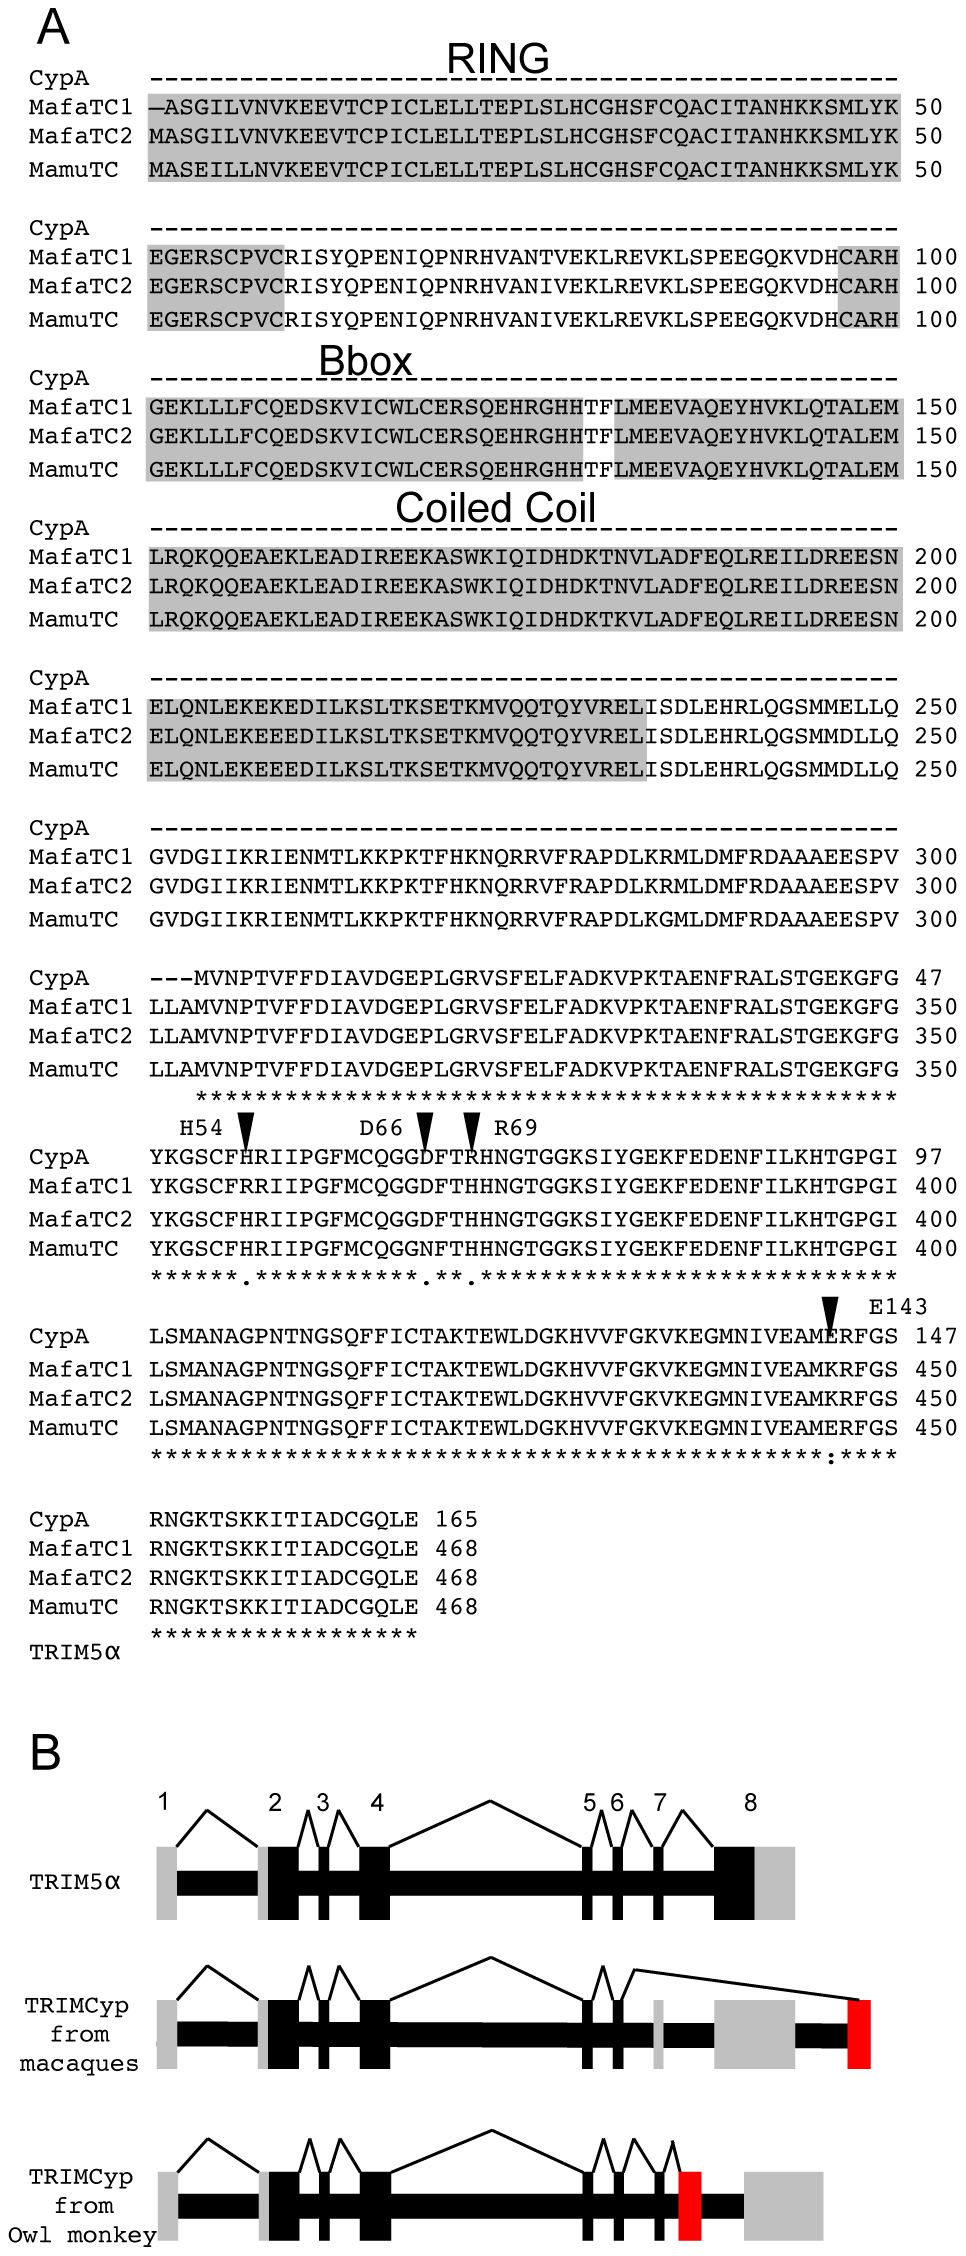 Sequence comparison of CypA and TRIMCyps from <i>Macaca mulatta</i> and <i>Macaca fascicularis</i> reveal differences in the Cyp domain of species variants of TRIMCyps.